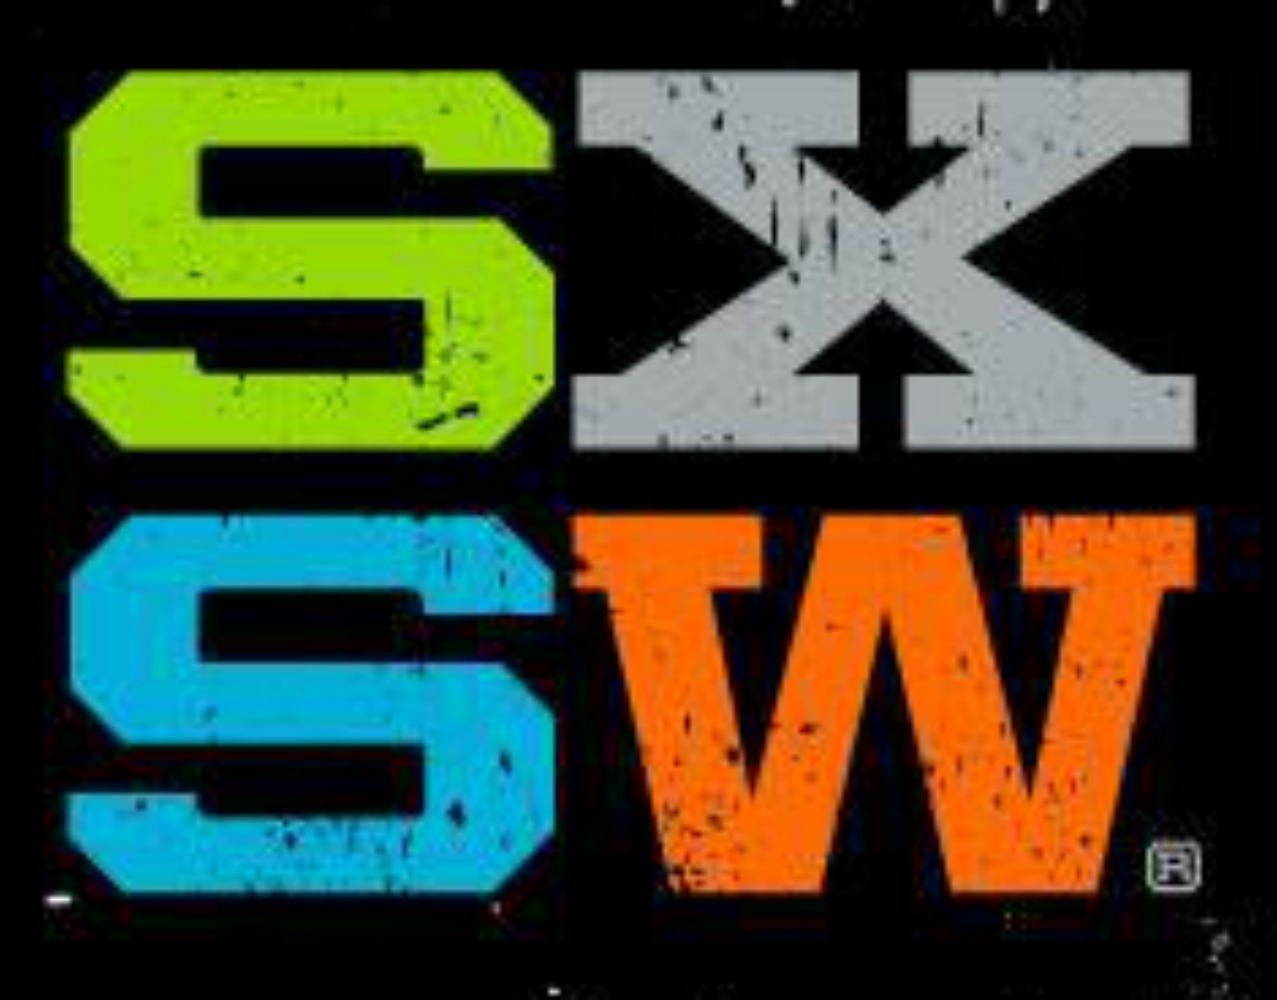 NEWS ROUNDUP: If You're Reading This, You're Not At SXSW